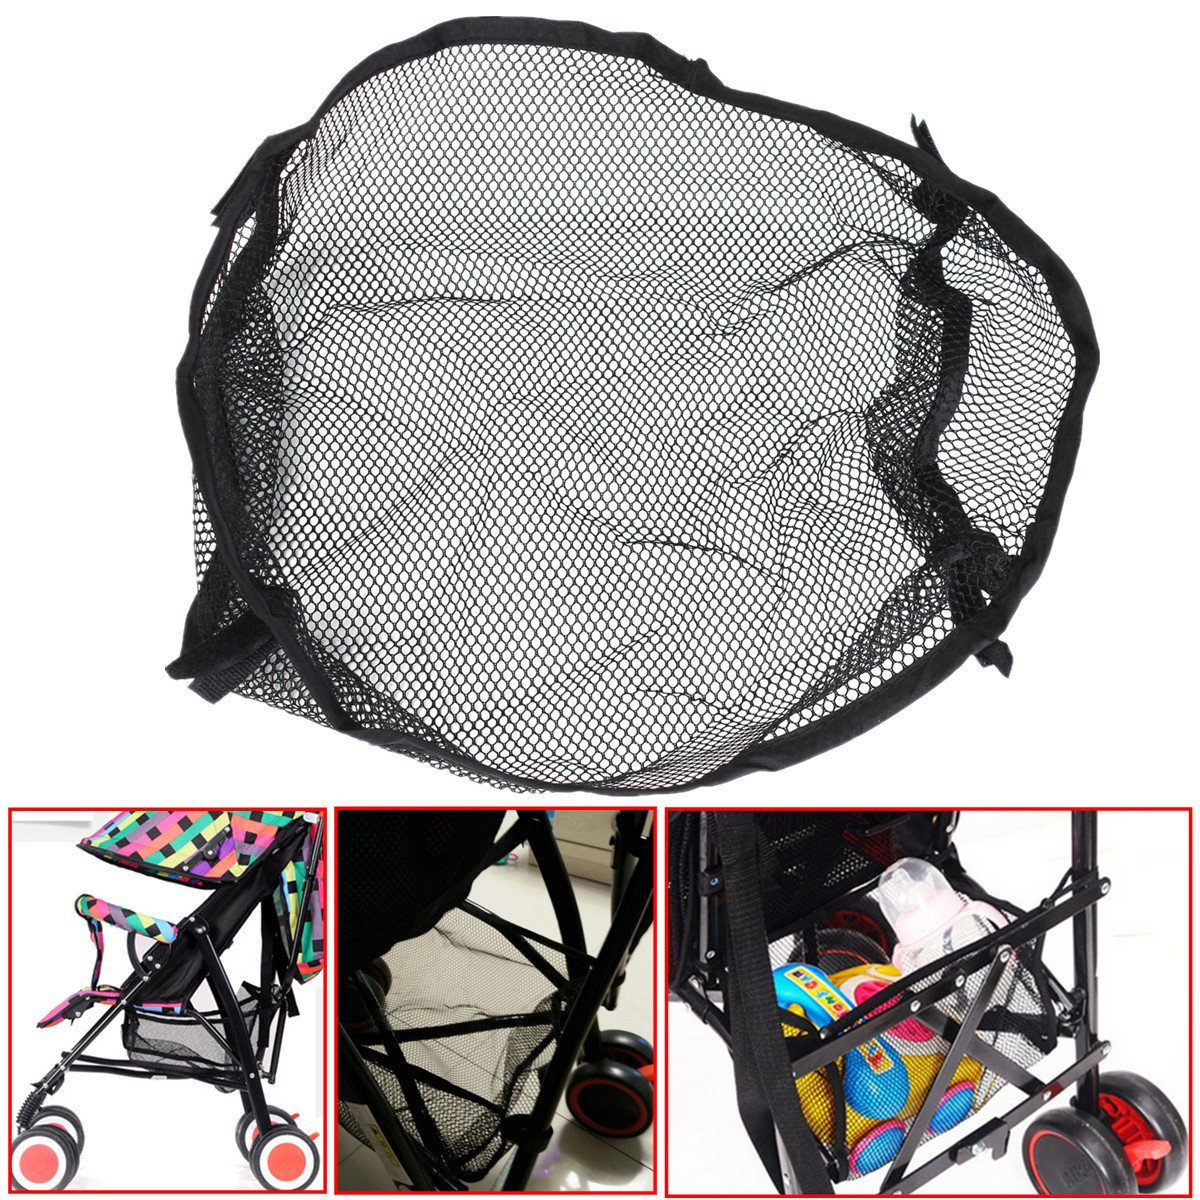 Bazaar Universal Black Under Storage Net Bag Buggy Stroller Pram Basket Shopping Baby Item Pushchair Pocket Big Bazaar